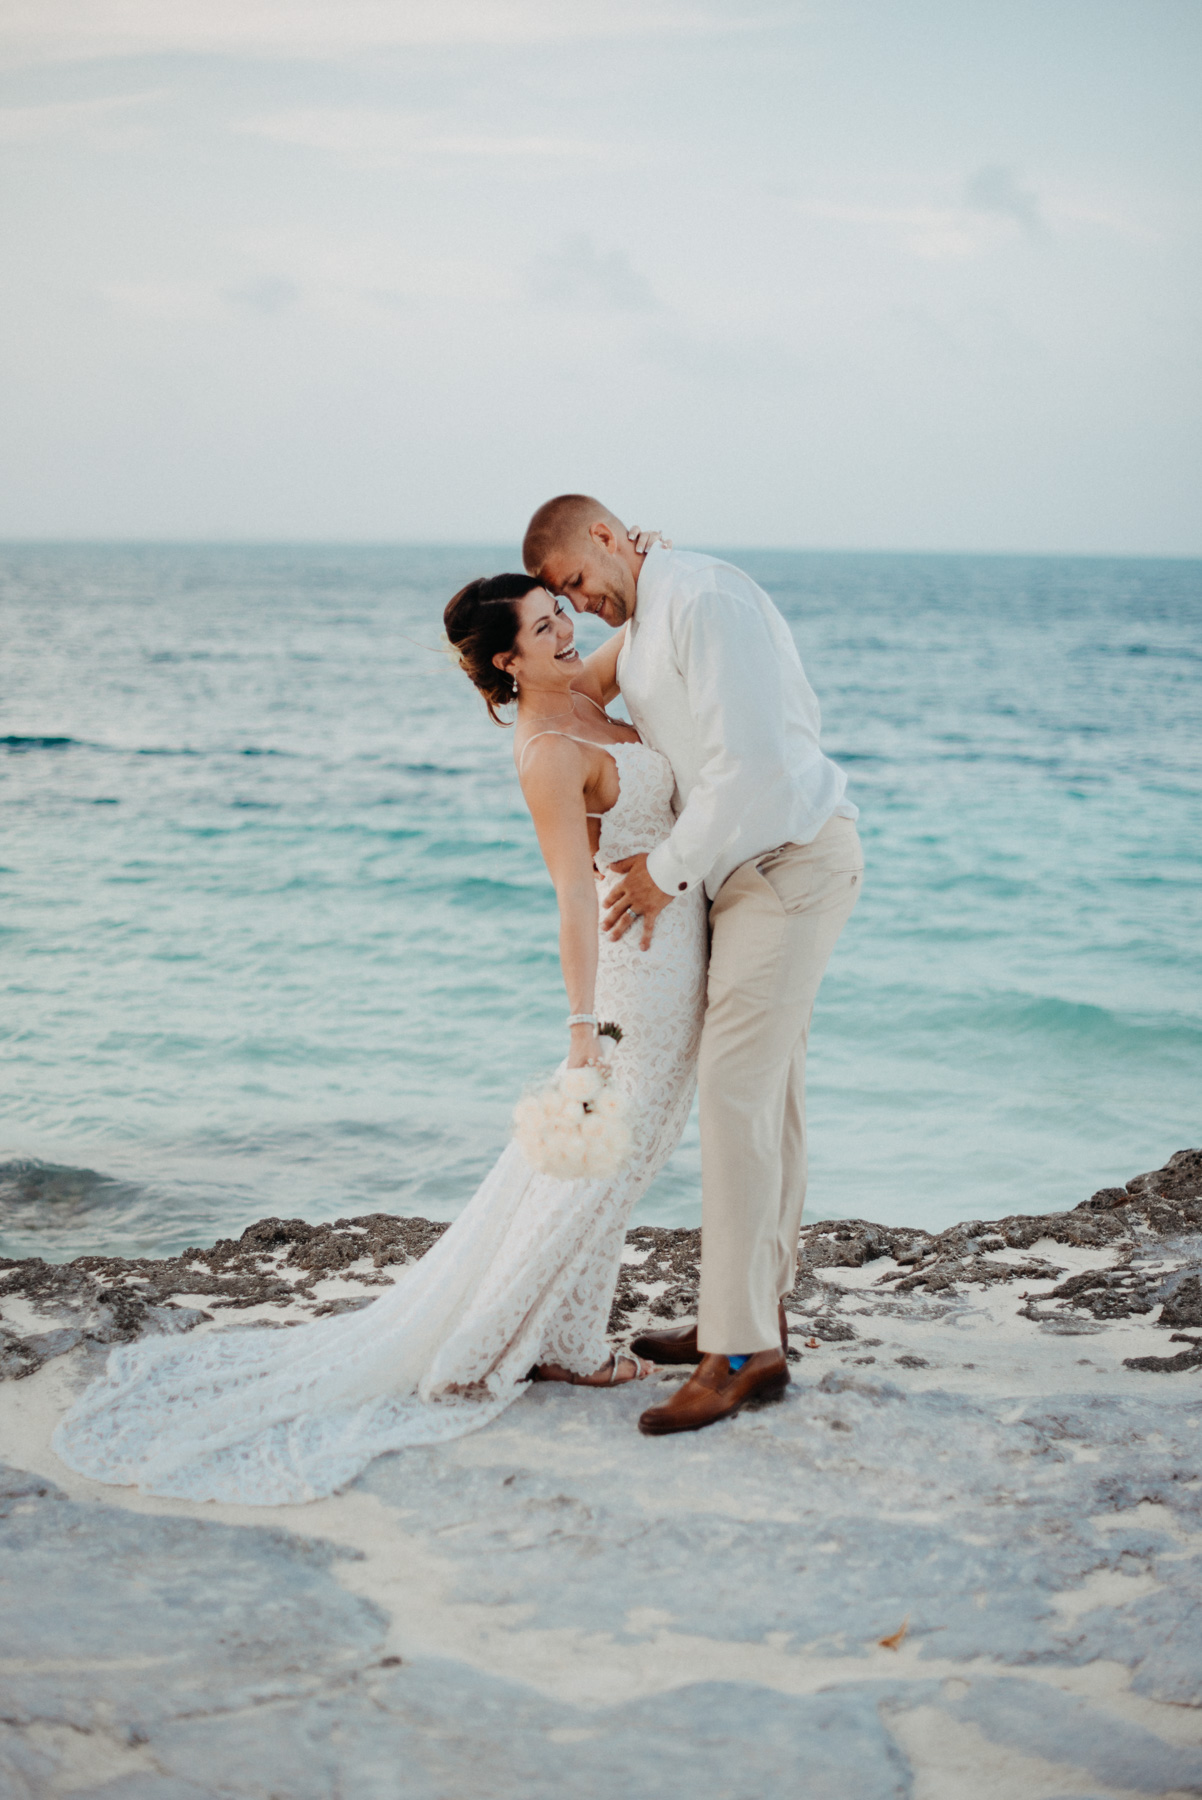 Julia and Tony, in front of the beautiful blue waters off the coast of Cancun, Mexico, in Riviera Maya, after their beach front wedding. They decided to have a destination elopement with their nearest and dearest in Cancun. I can only imagine I had a super lame dad joke here, which is why they are laughing! Copyright: Teresa Woodhull Photography